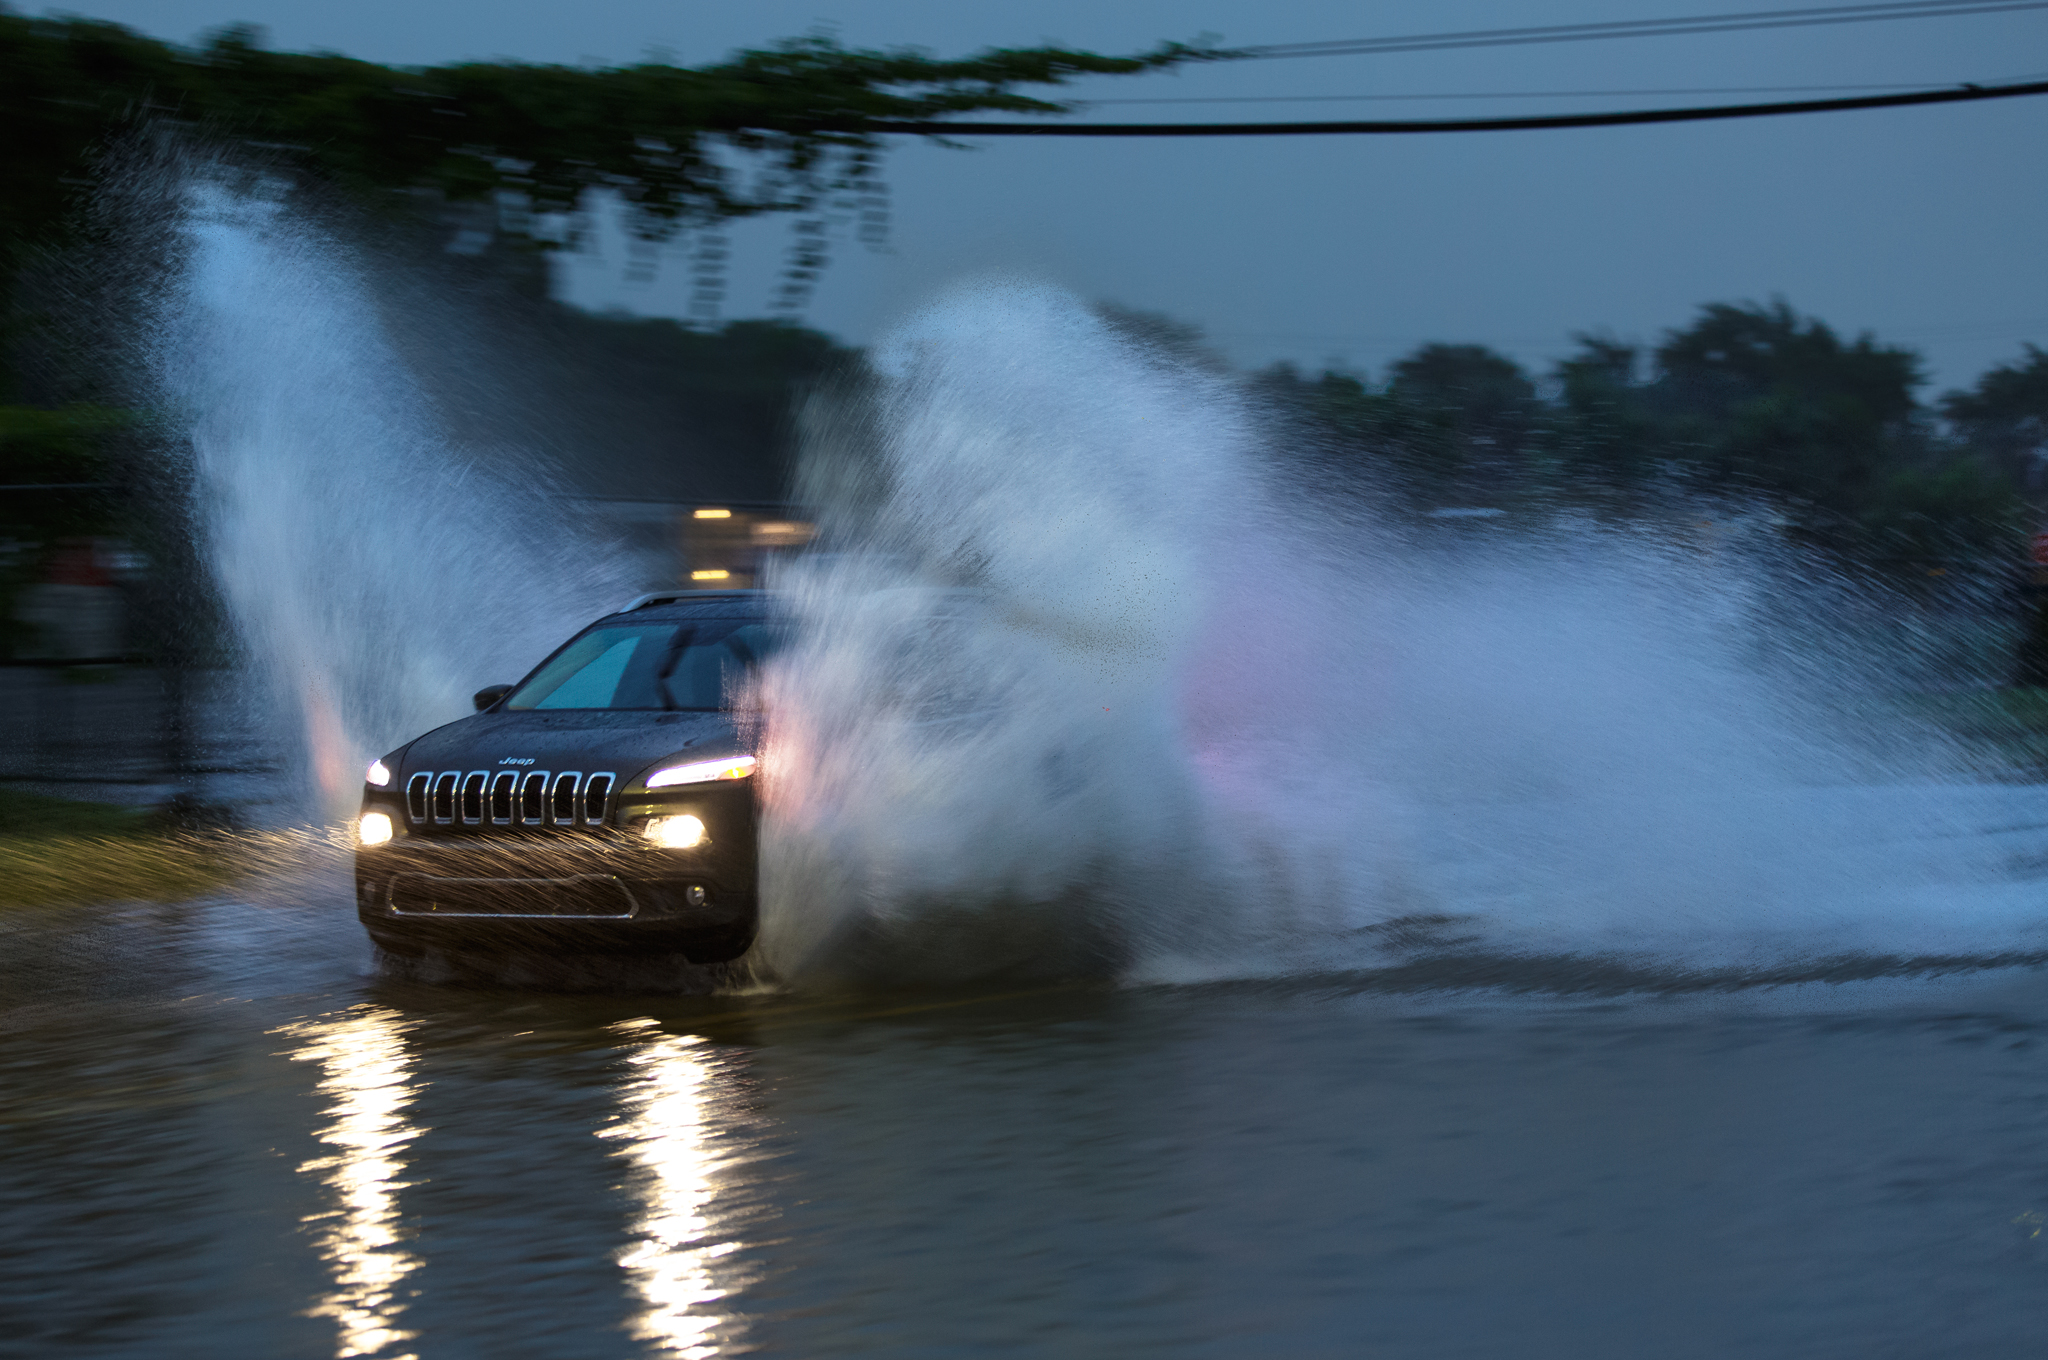 When Mother Nature threw down her savage gauntlet, we remembered why it's great to have a Jeep.